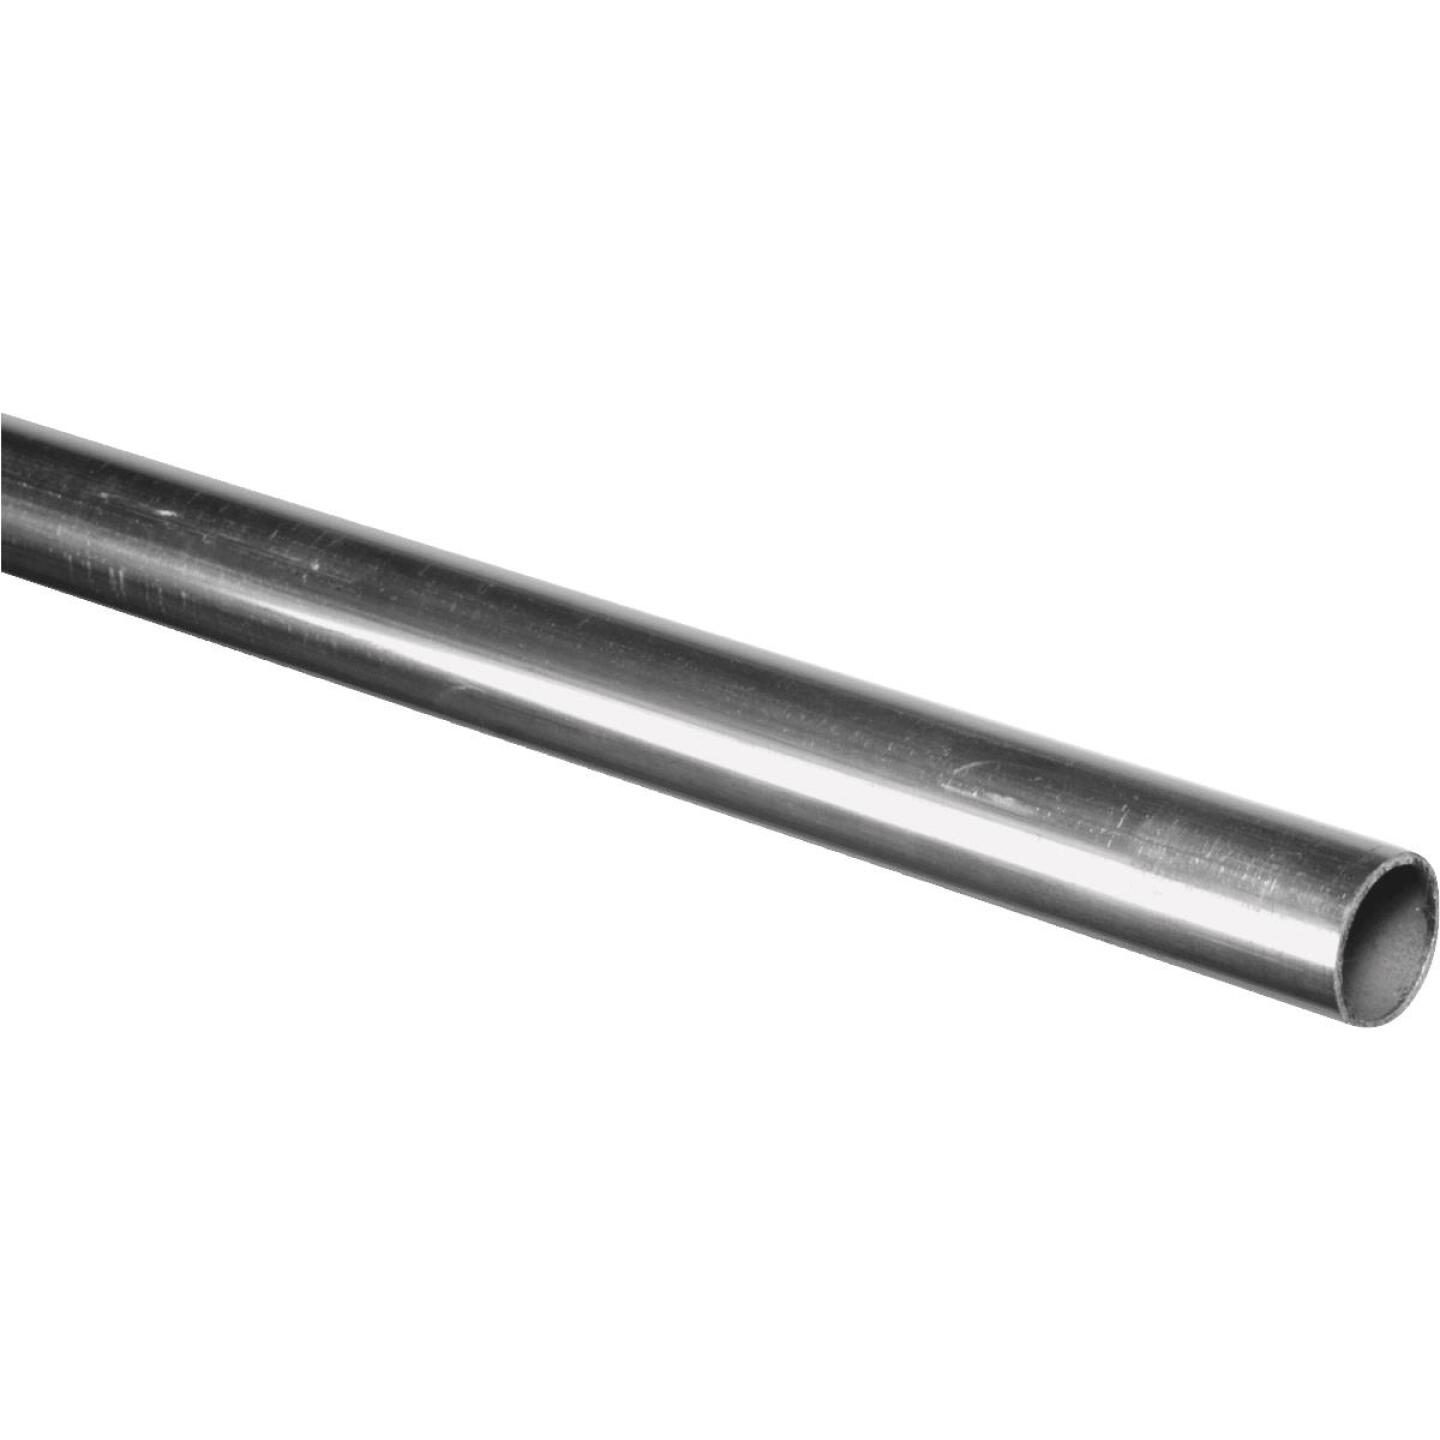 HILLMAN Steelworks Aluminum 7/8 In. O.D. x 4 Ft. Round Tube Stock Image 1